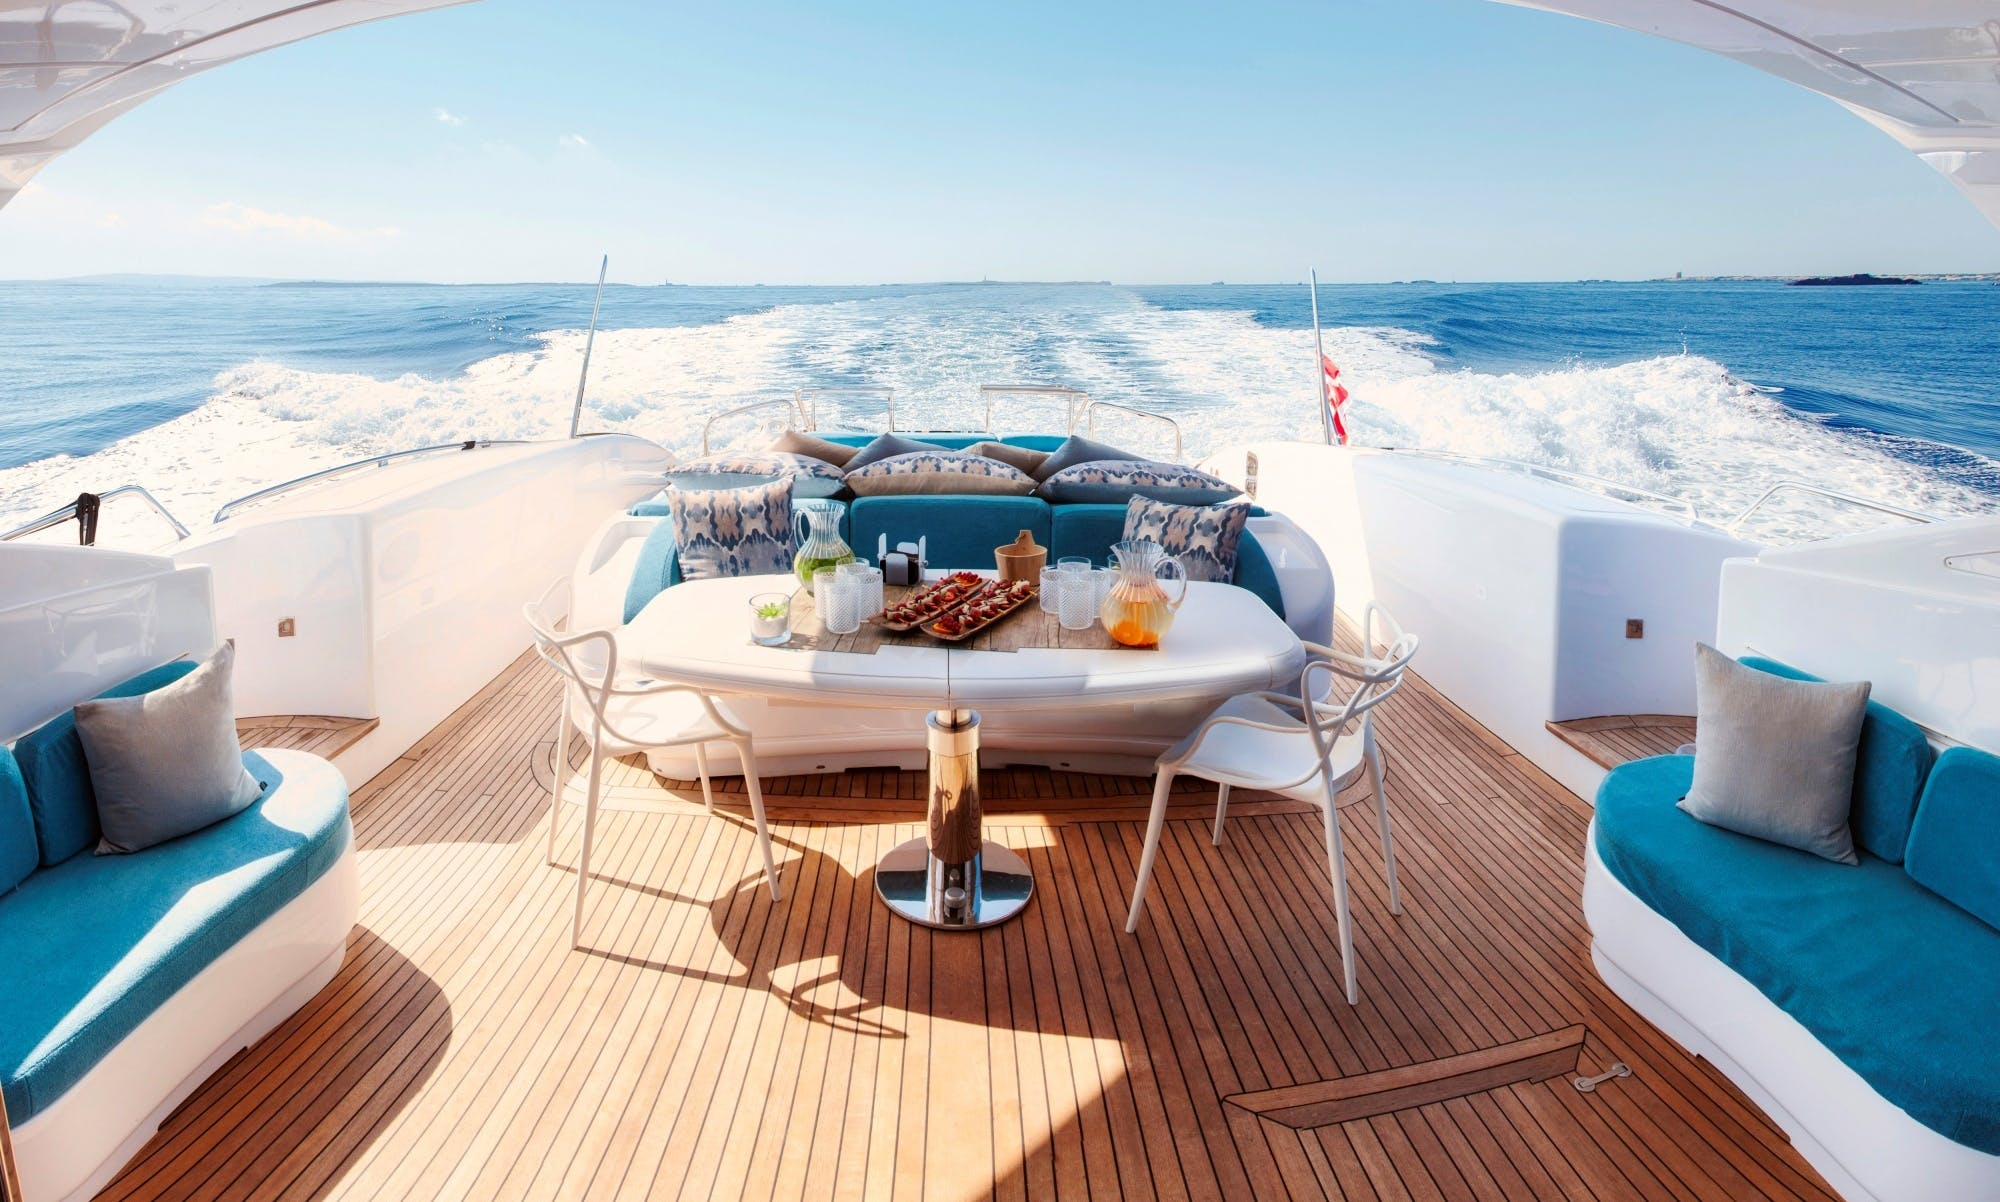 2600 hp Mangusta 108 Mega Yacht Charter for 11 Guests in Ibiza, Spain